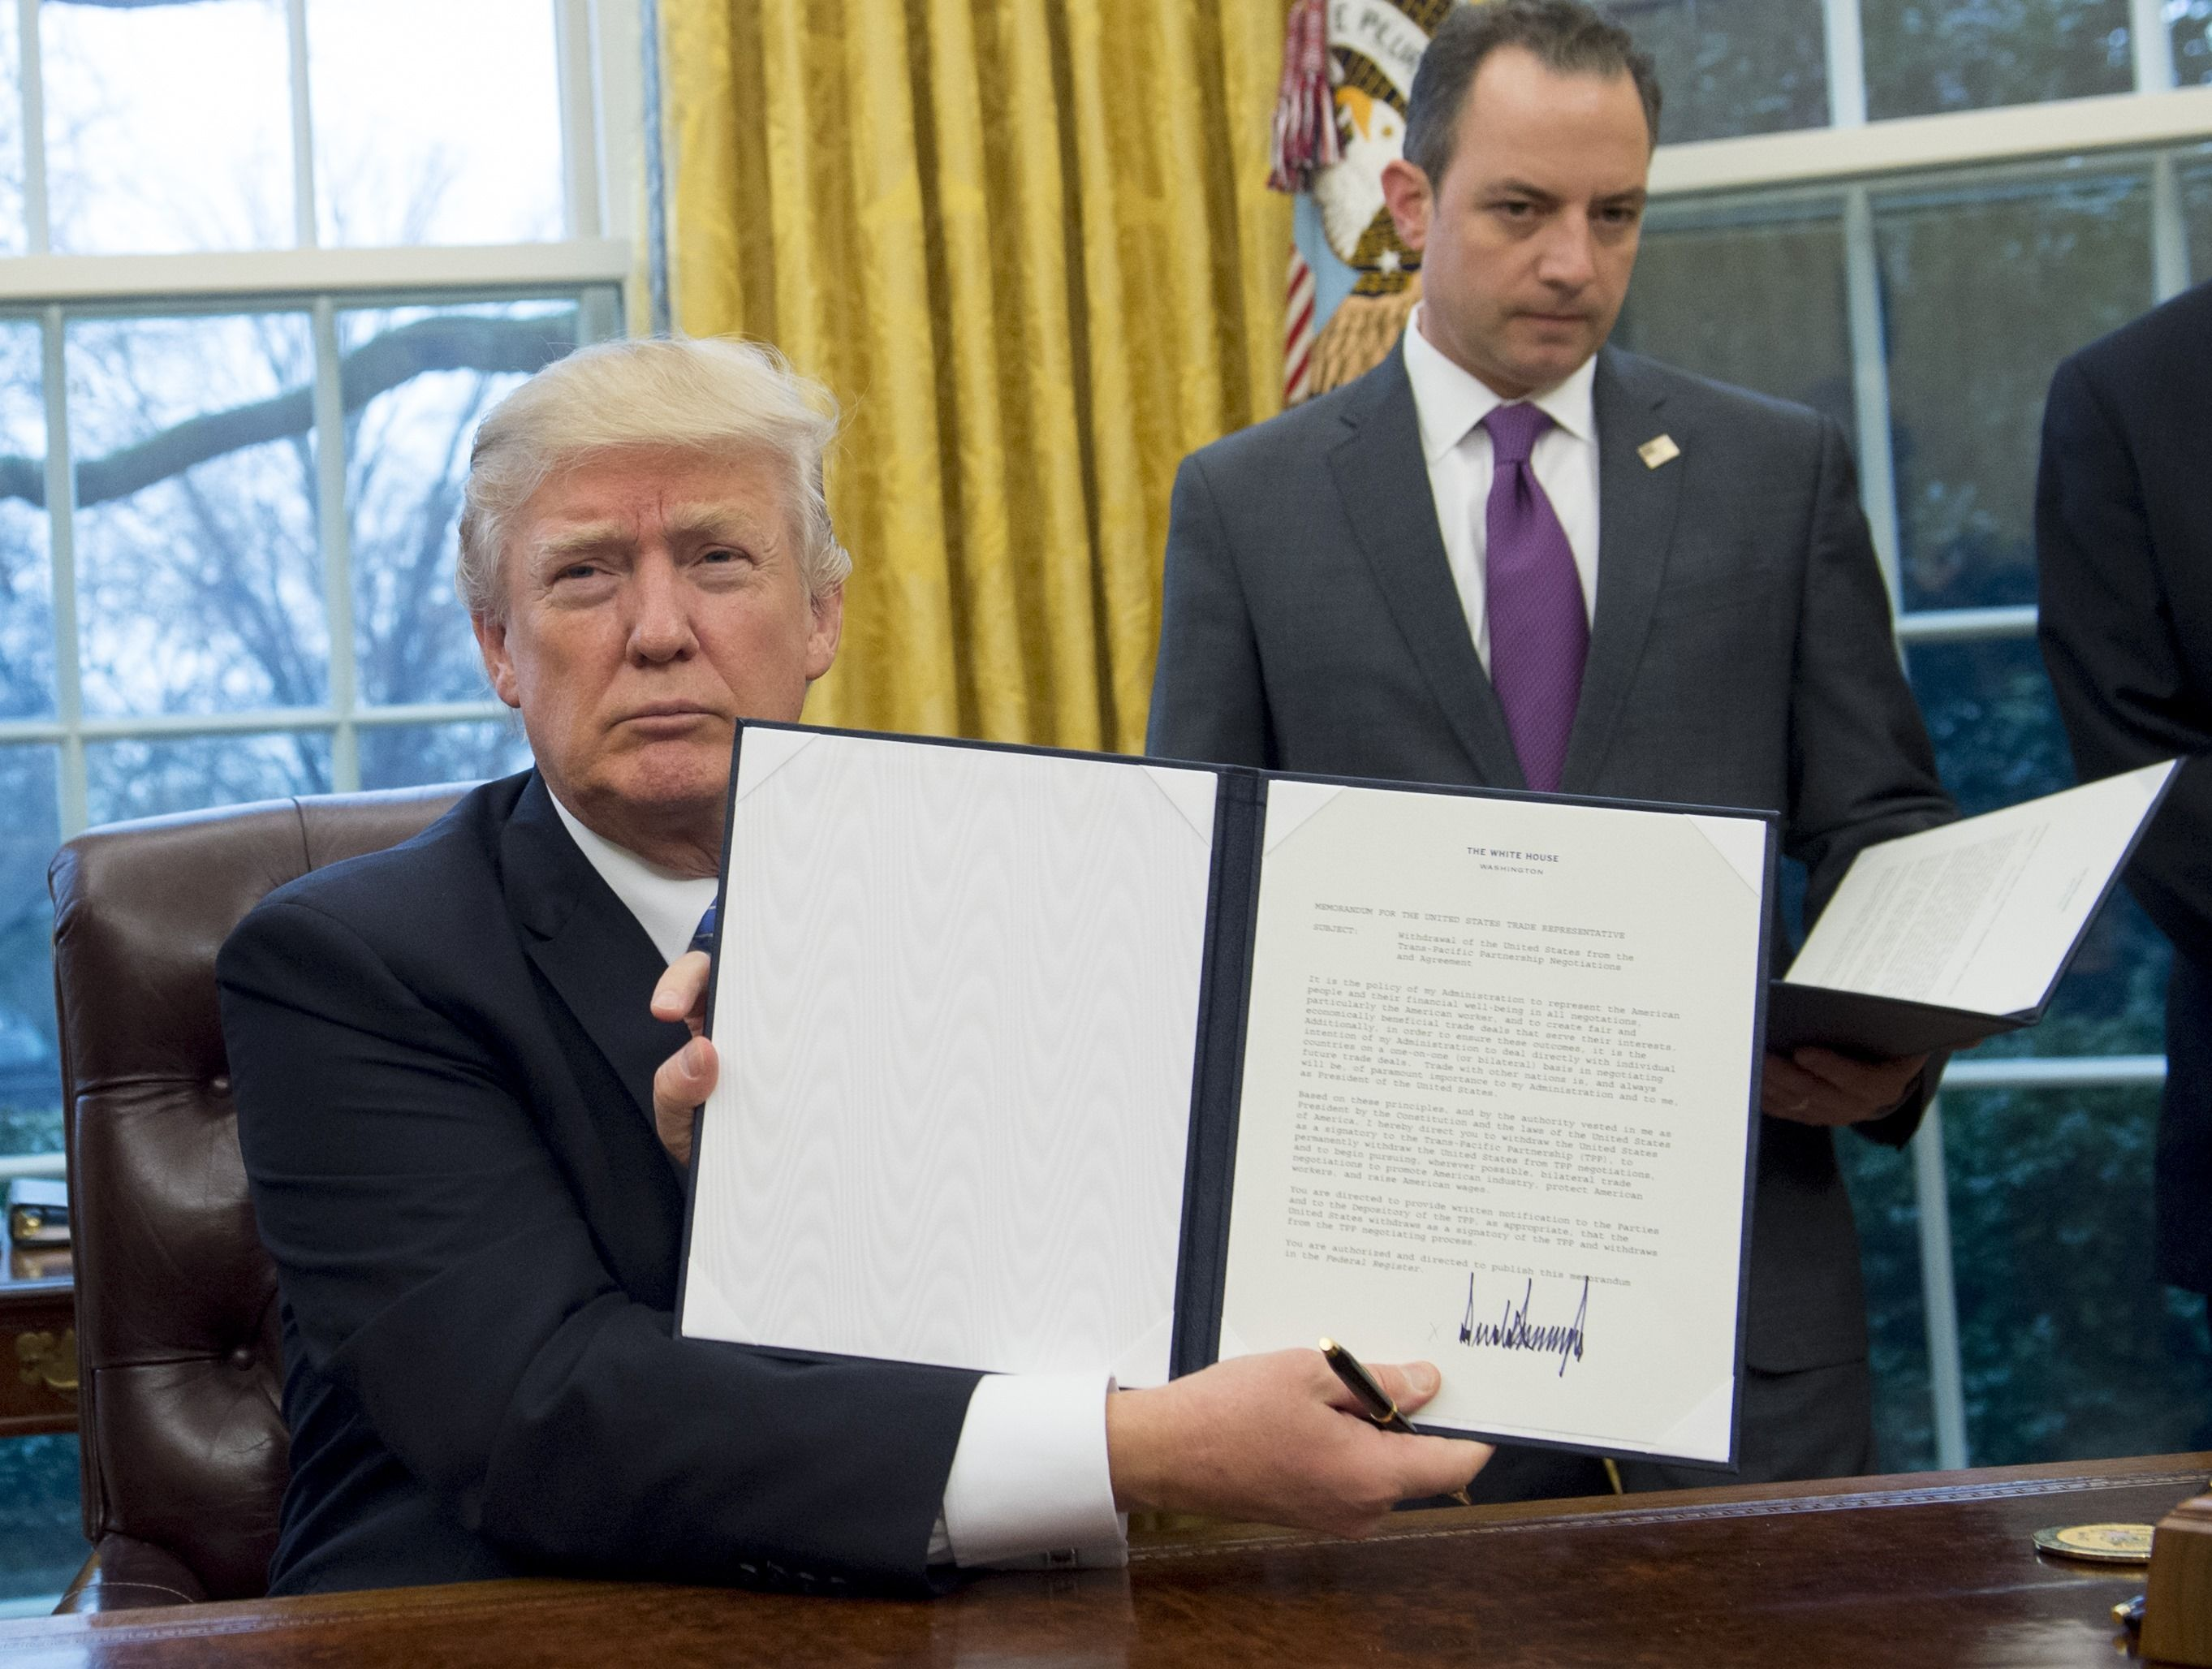 Fedex Jobs Entrancing Psbattle Trump Signs Memo To Leave Tpp Trade Pact  Funny Photoshop .